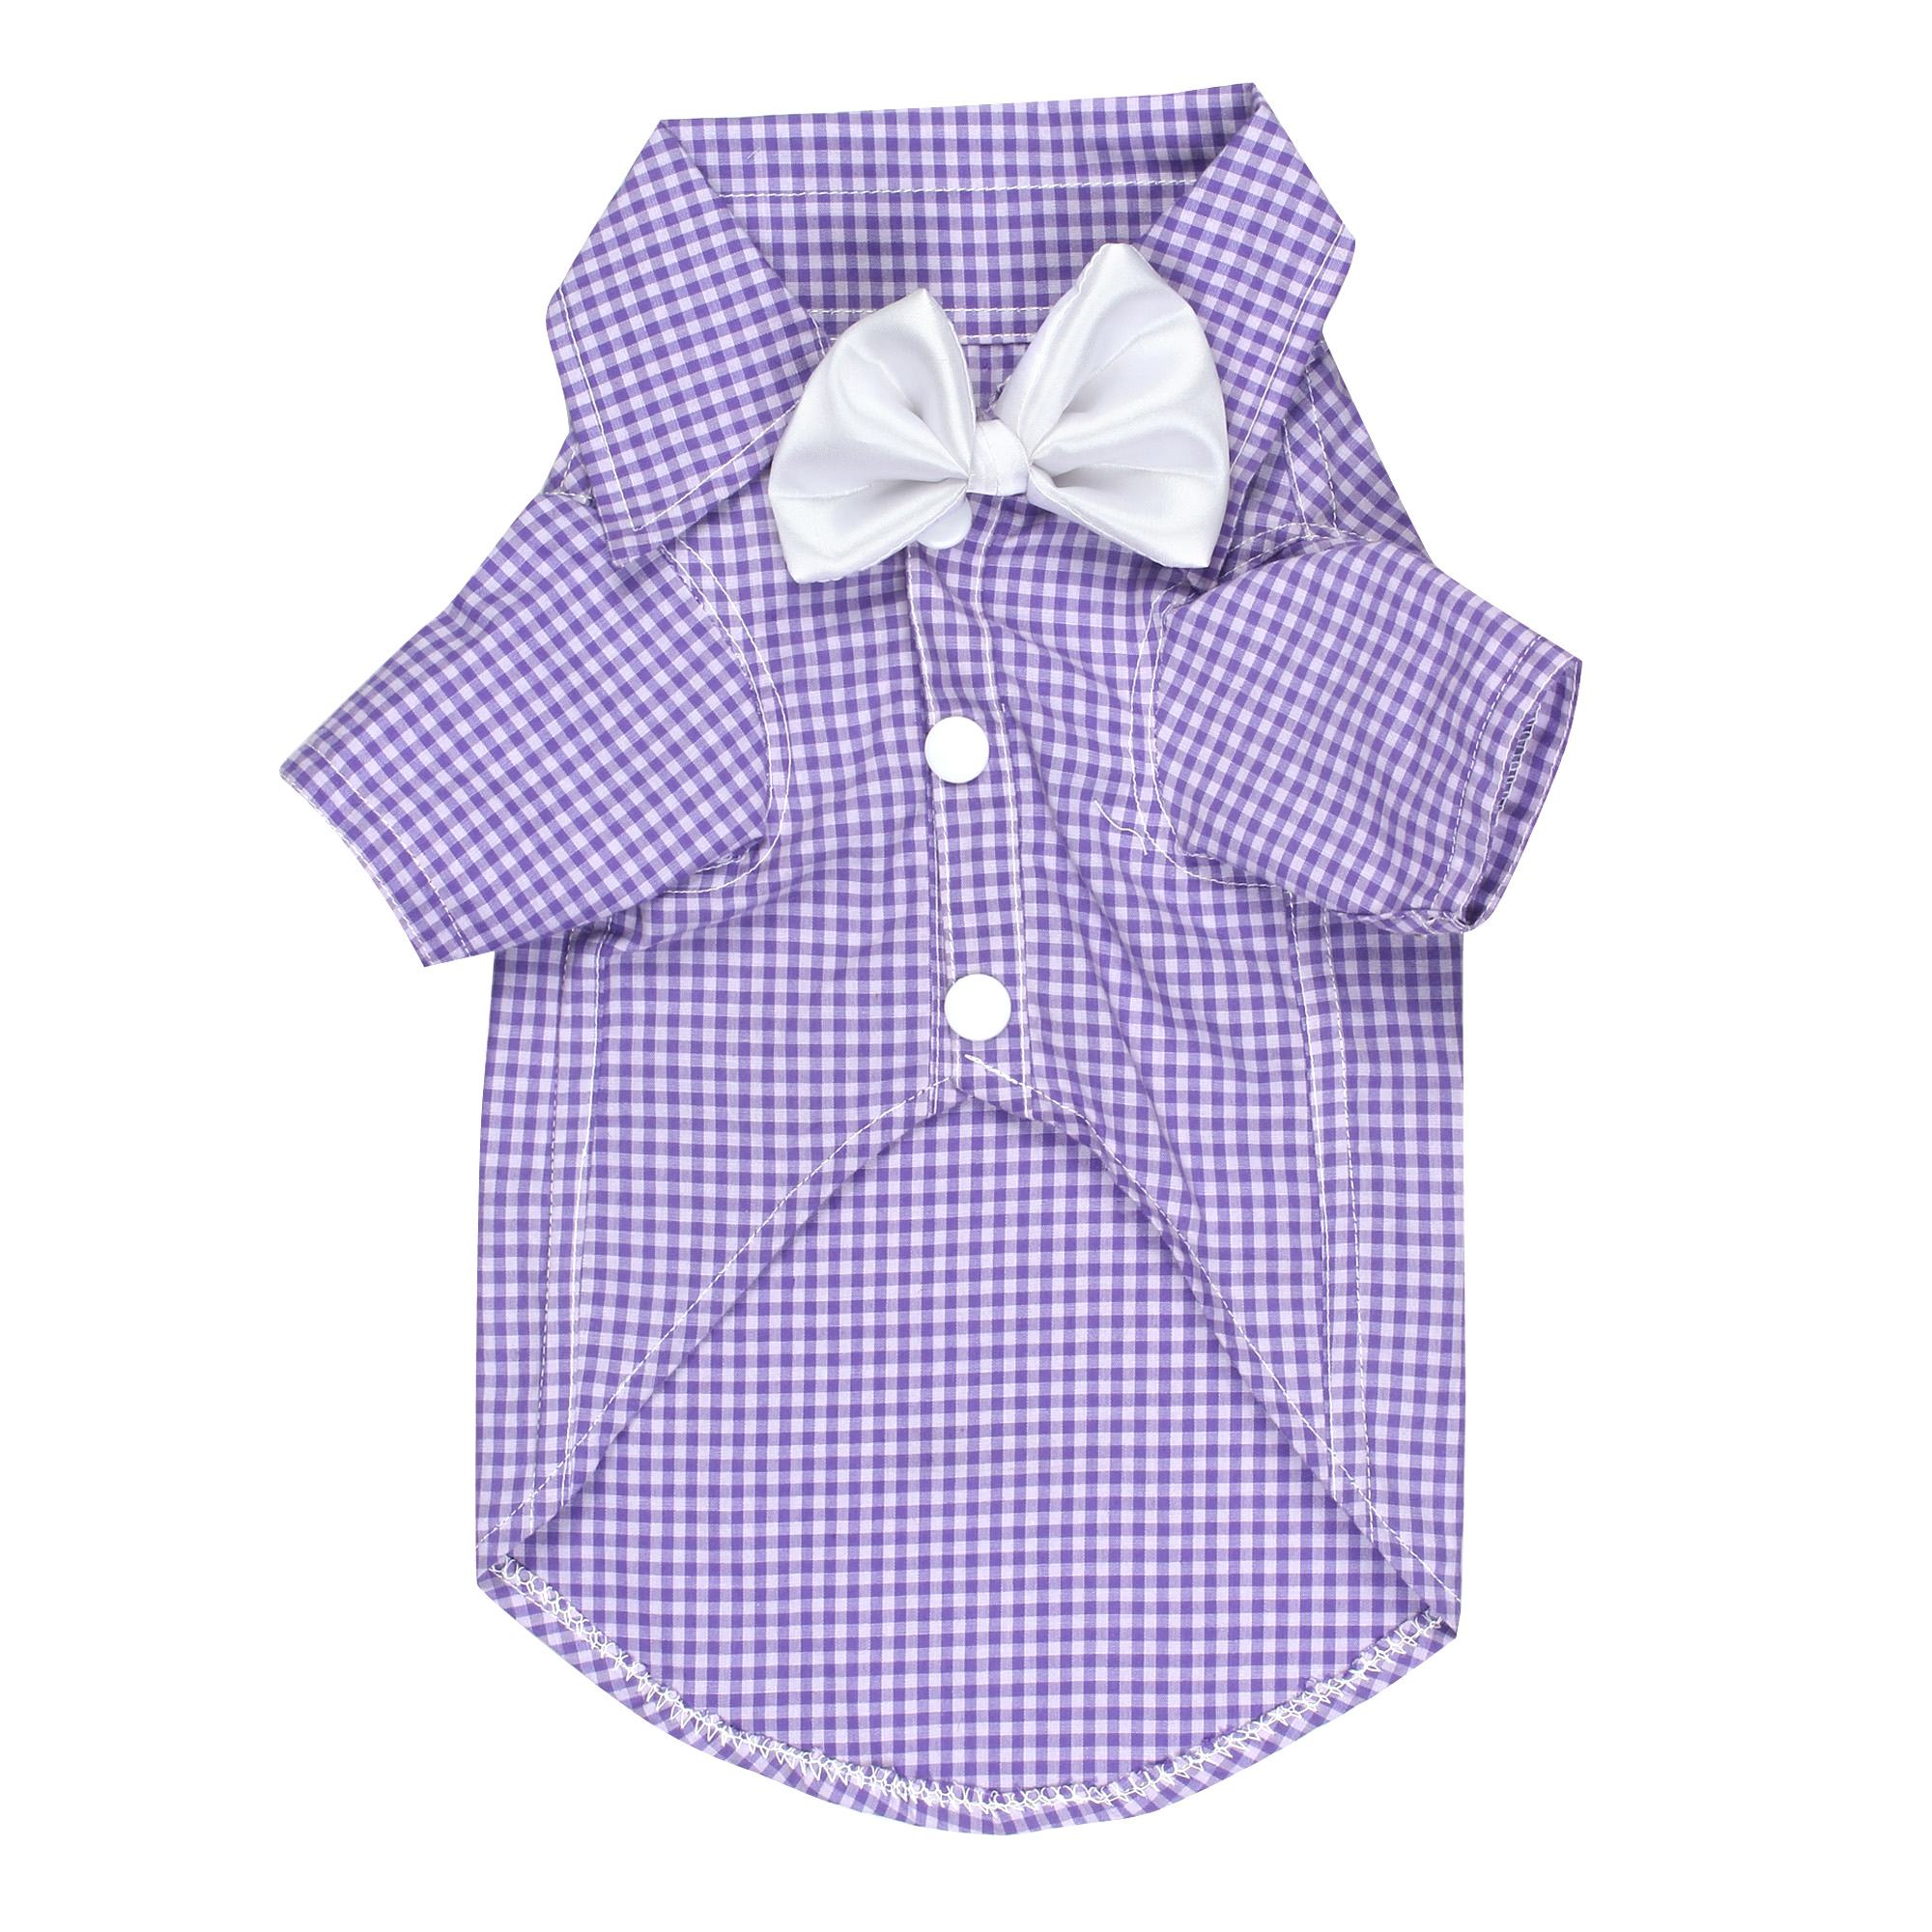 Douge Couture PURPLE WHITE stylish check shirt with white bow